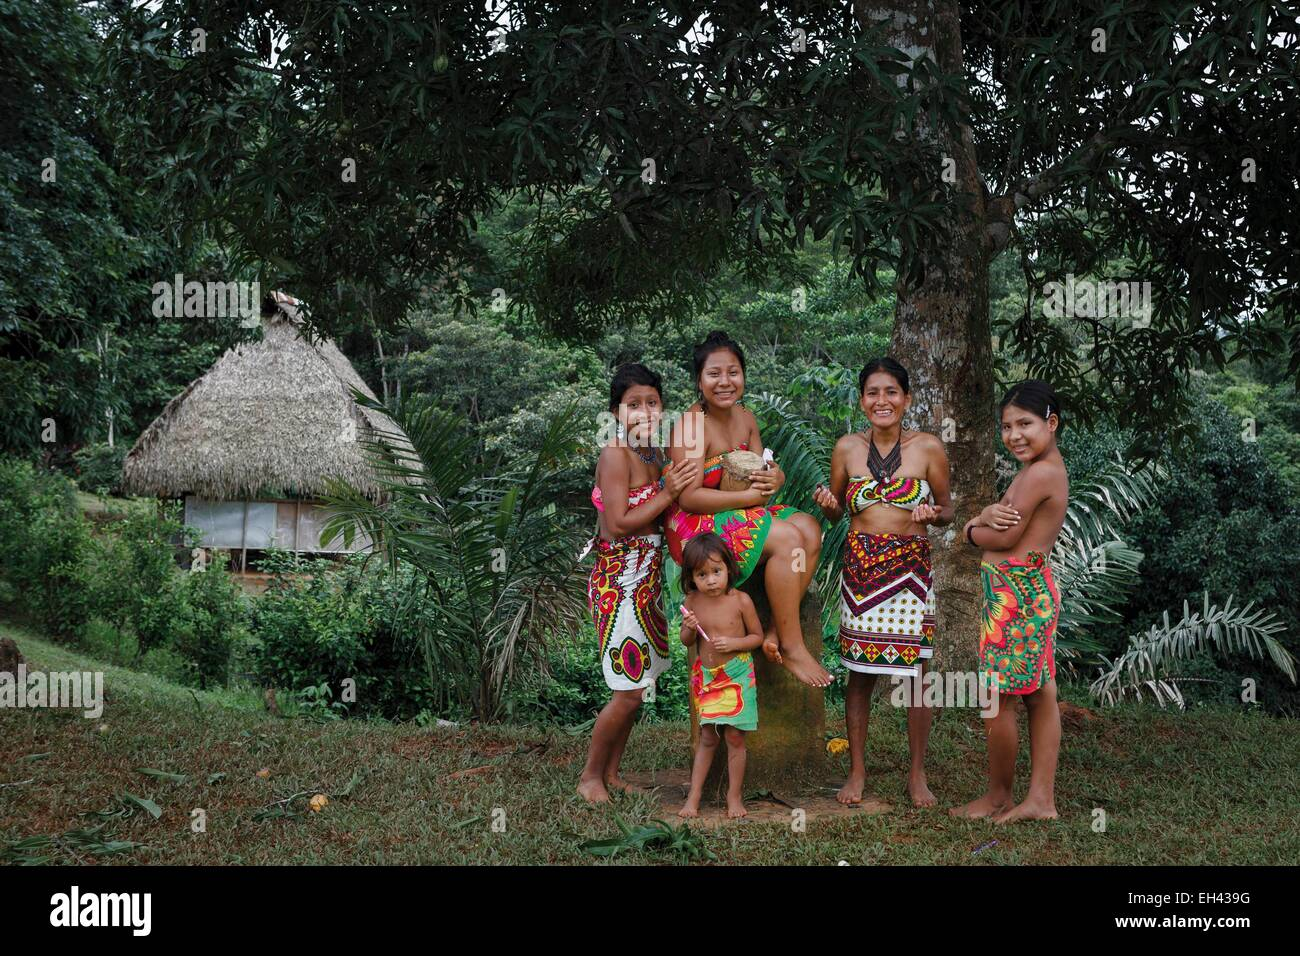 Panama, Darien province, Darien National Park, listed as World Heritage by UNESCO, Embera indigenous community, portrait of an Embera indigenous family in a tropical greenery Stock Photo